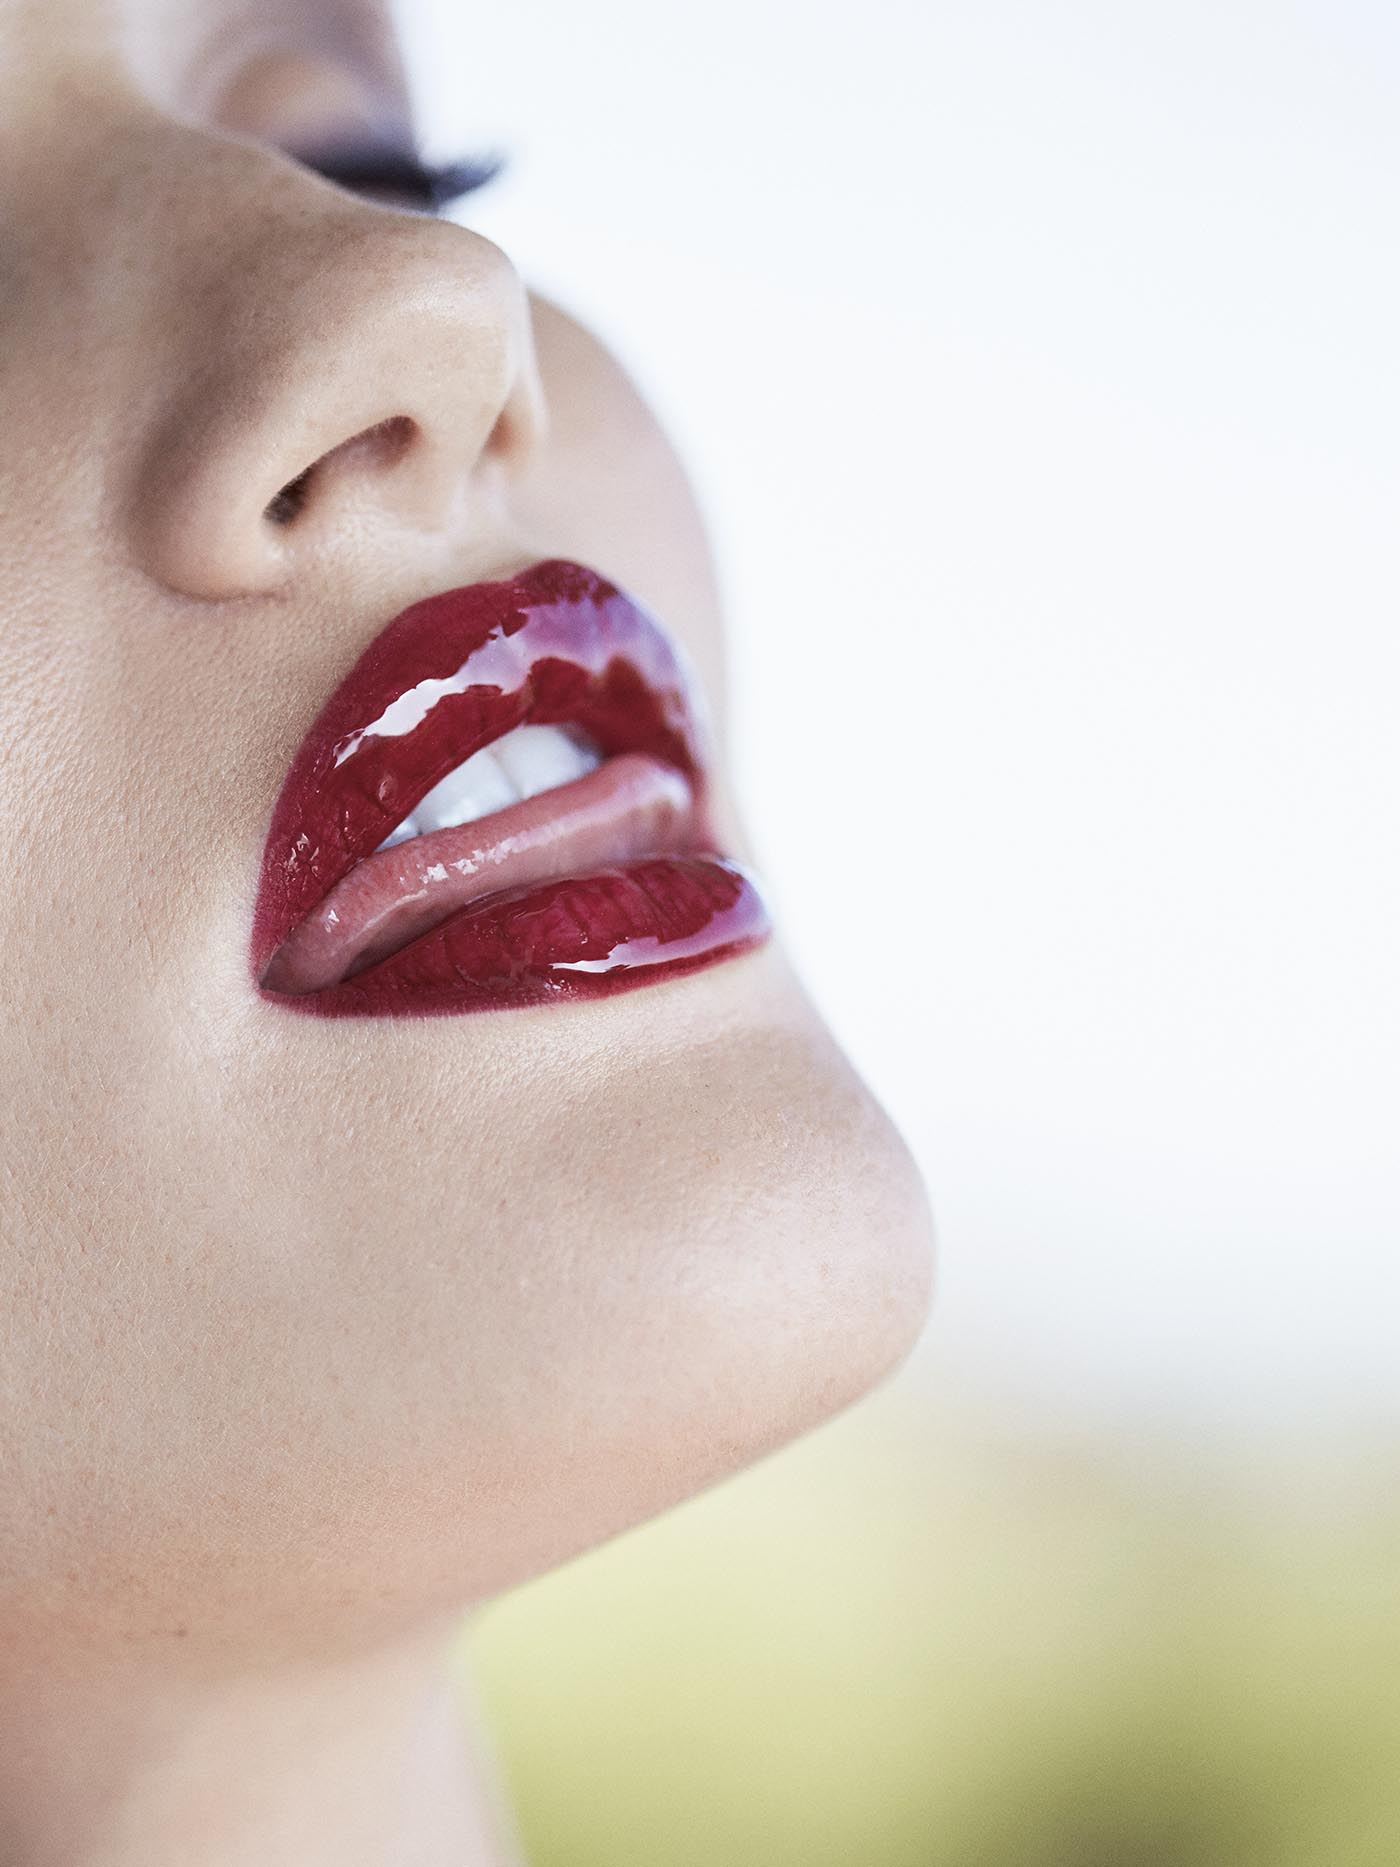 Rosie's Red Lips by Russell James